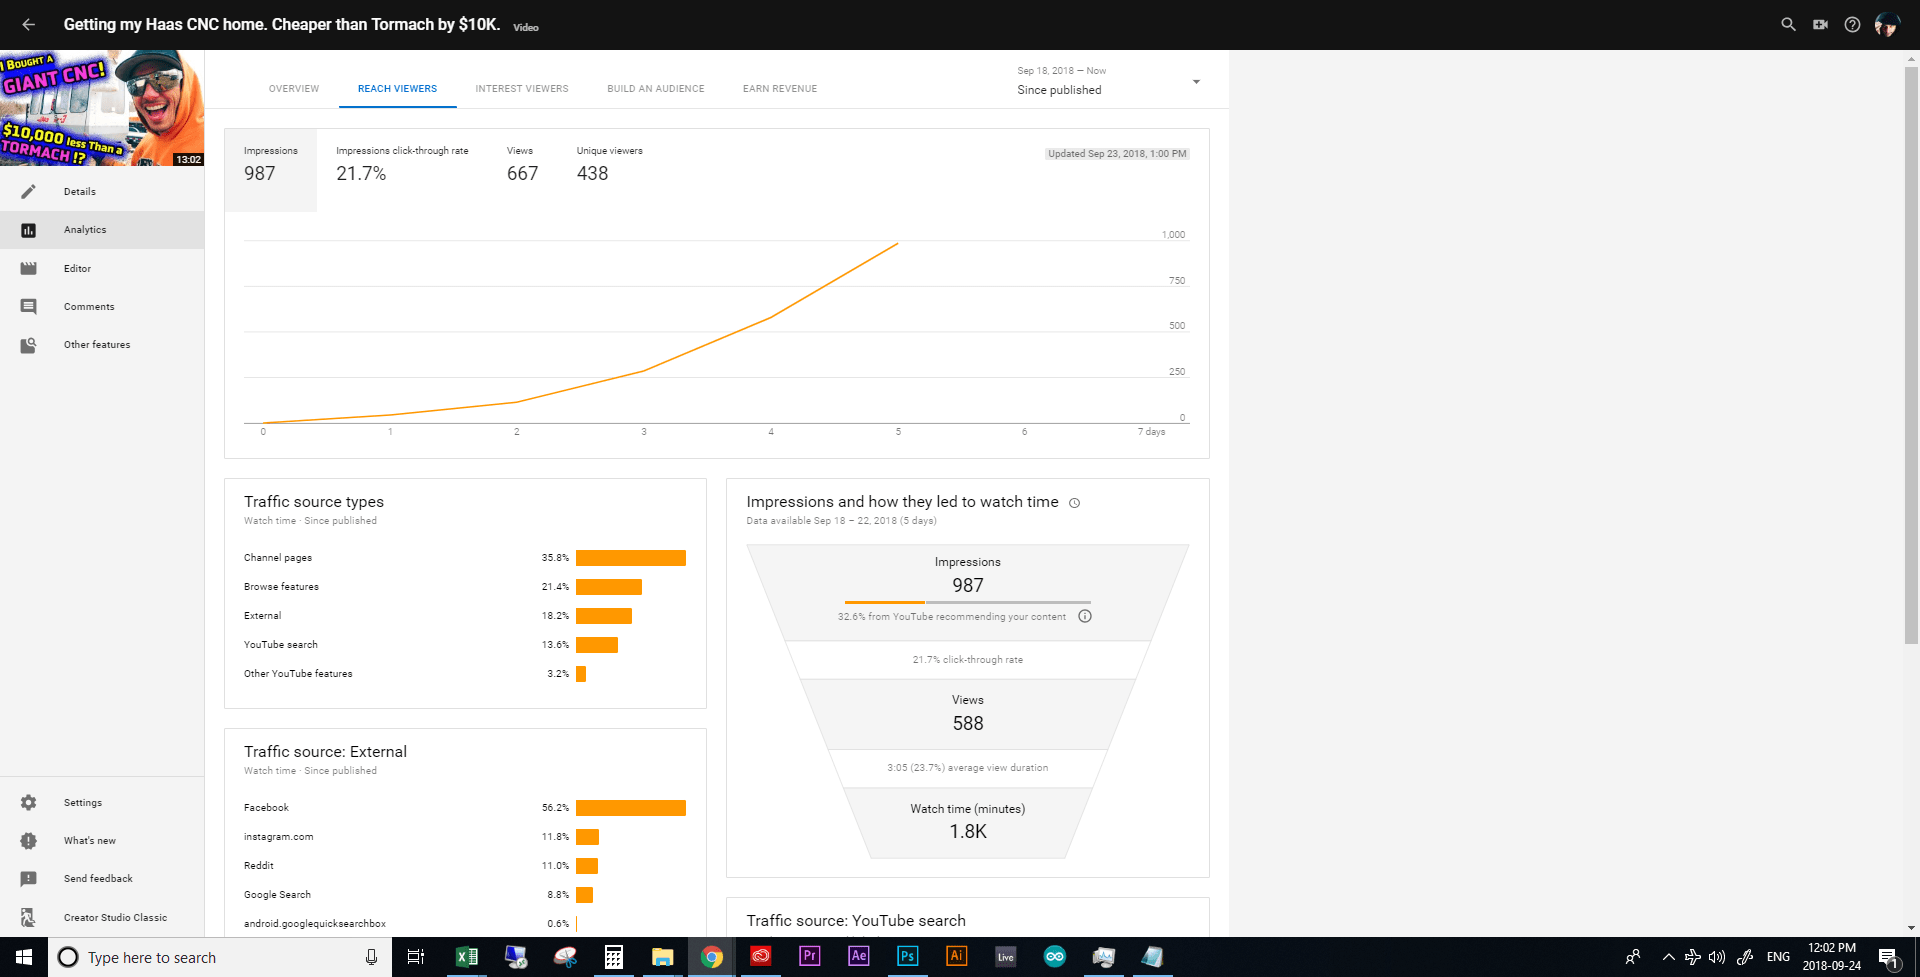 [Image] No matter how hard you get knocked down, get back up. I lost I lost my job 2.5 years ago. I started a channel. It's going so good after 6 days. [ YouTube is pushing my vid now. Graph is going up faster each day! ] I am so excited! XD